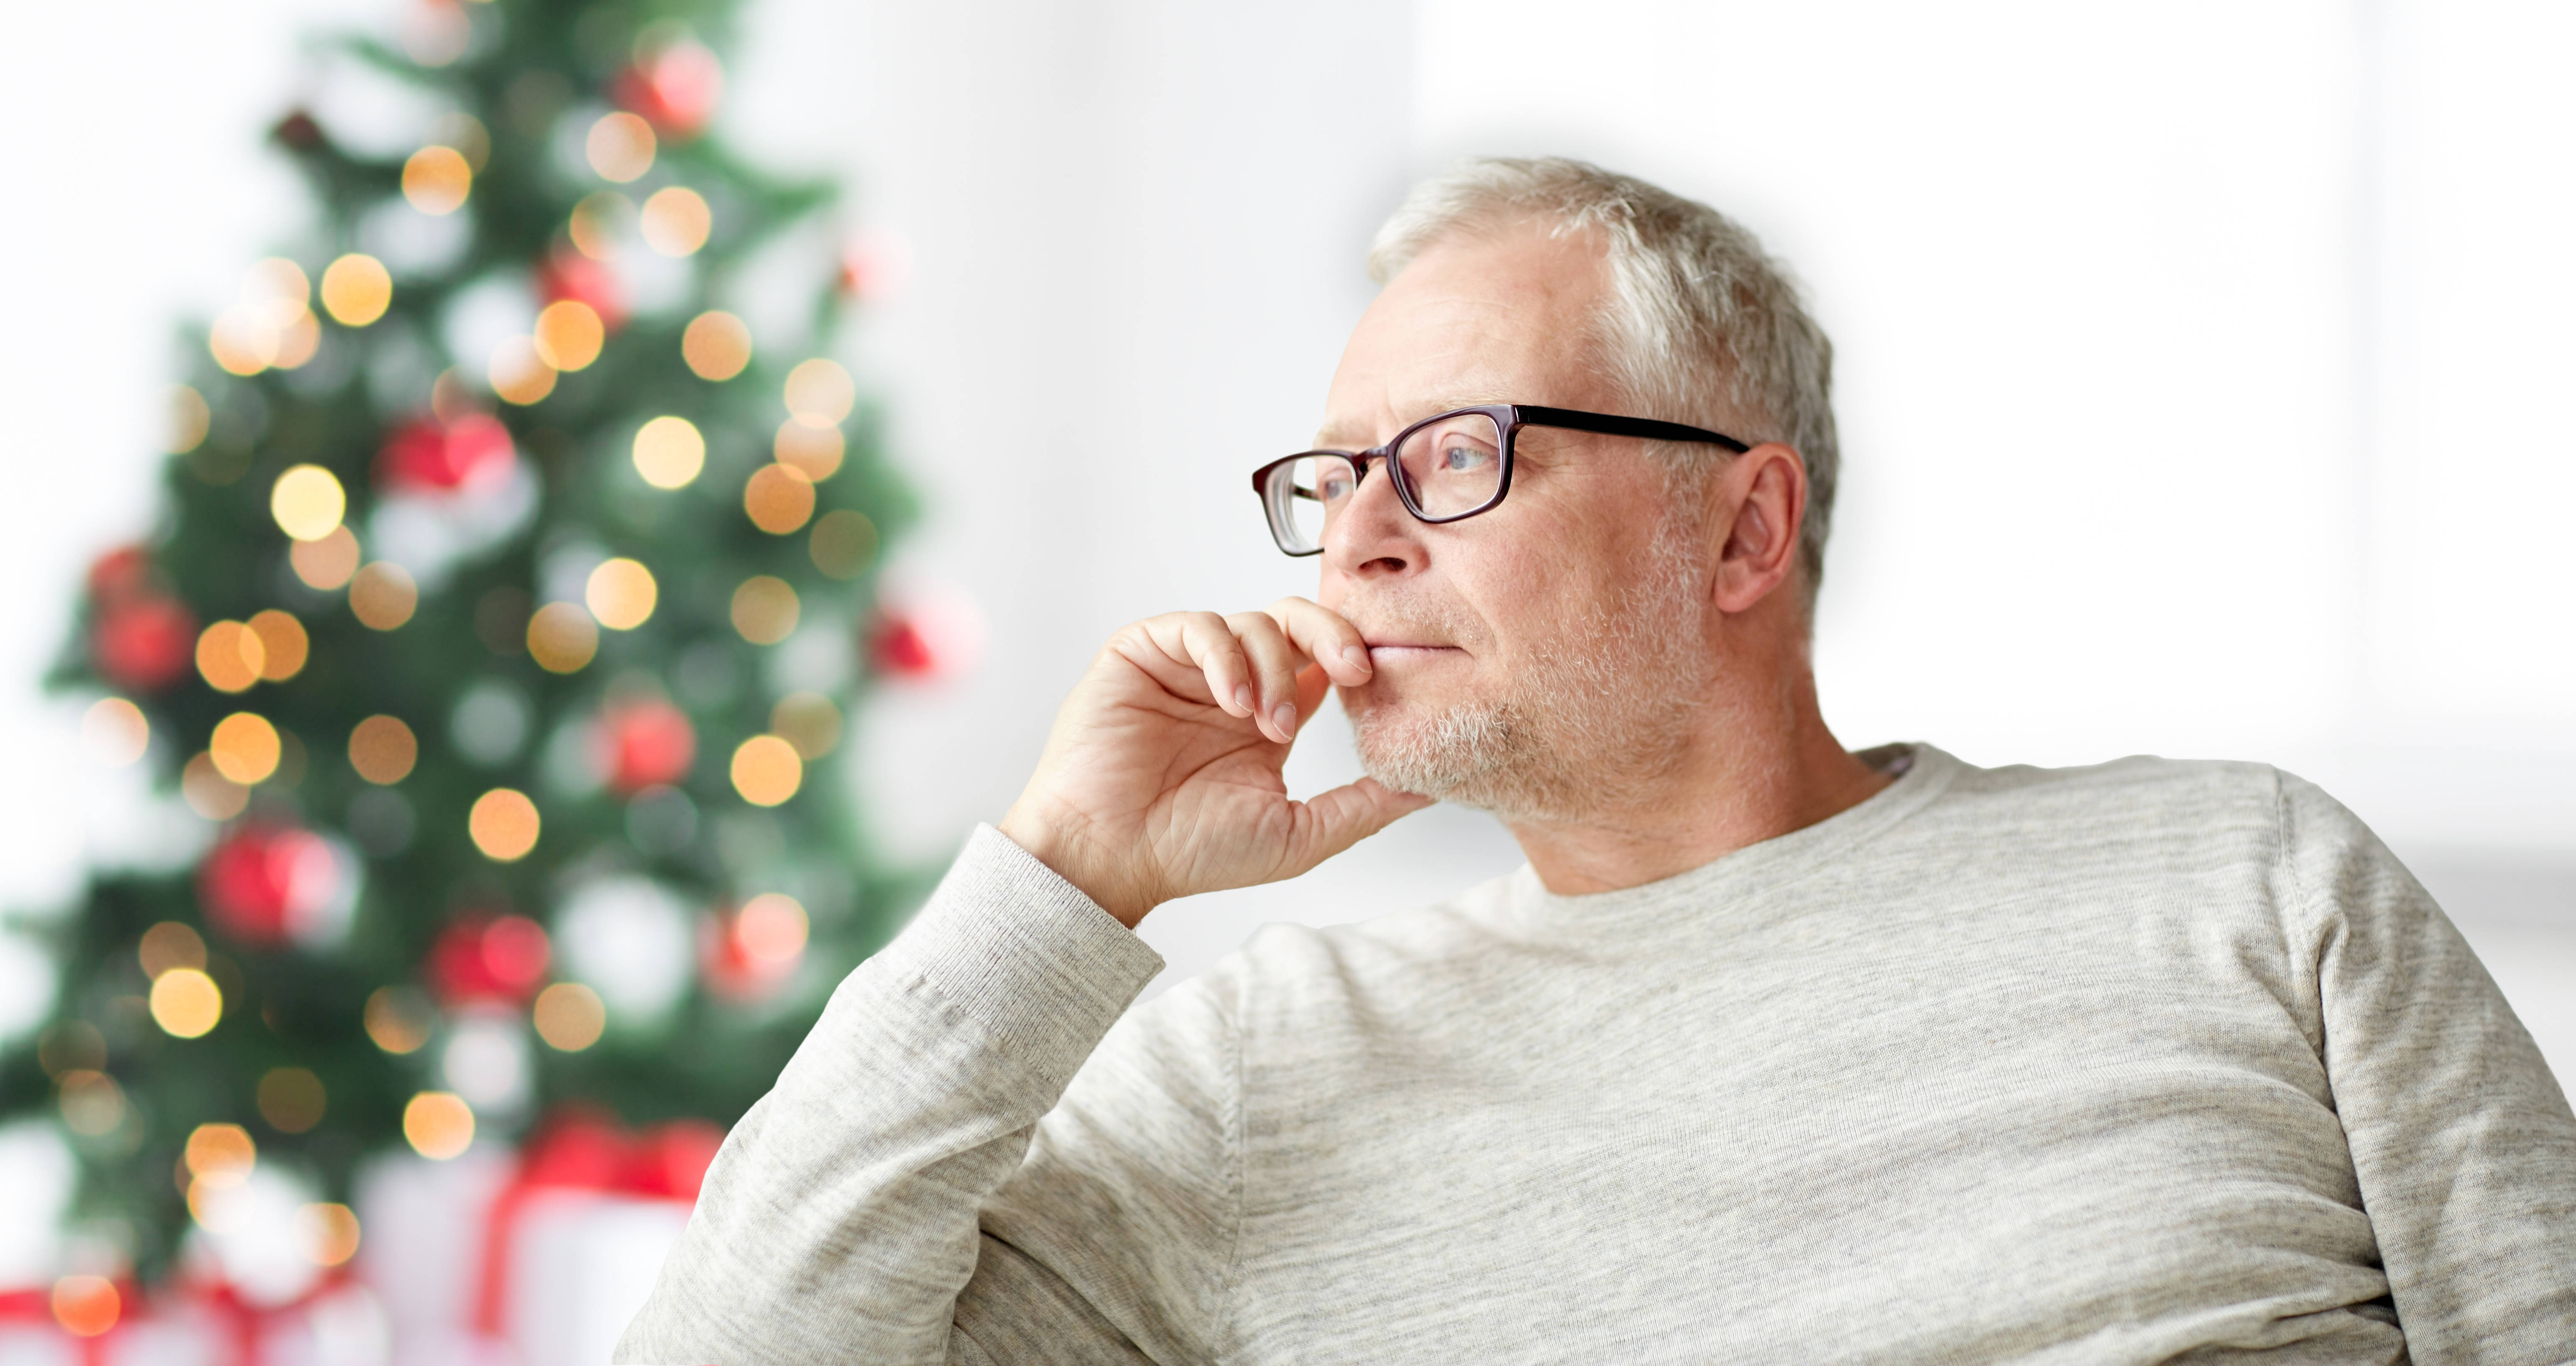 shutterstock_517386796 older man with christmas tree blurred in background.jpg